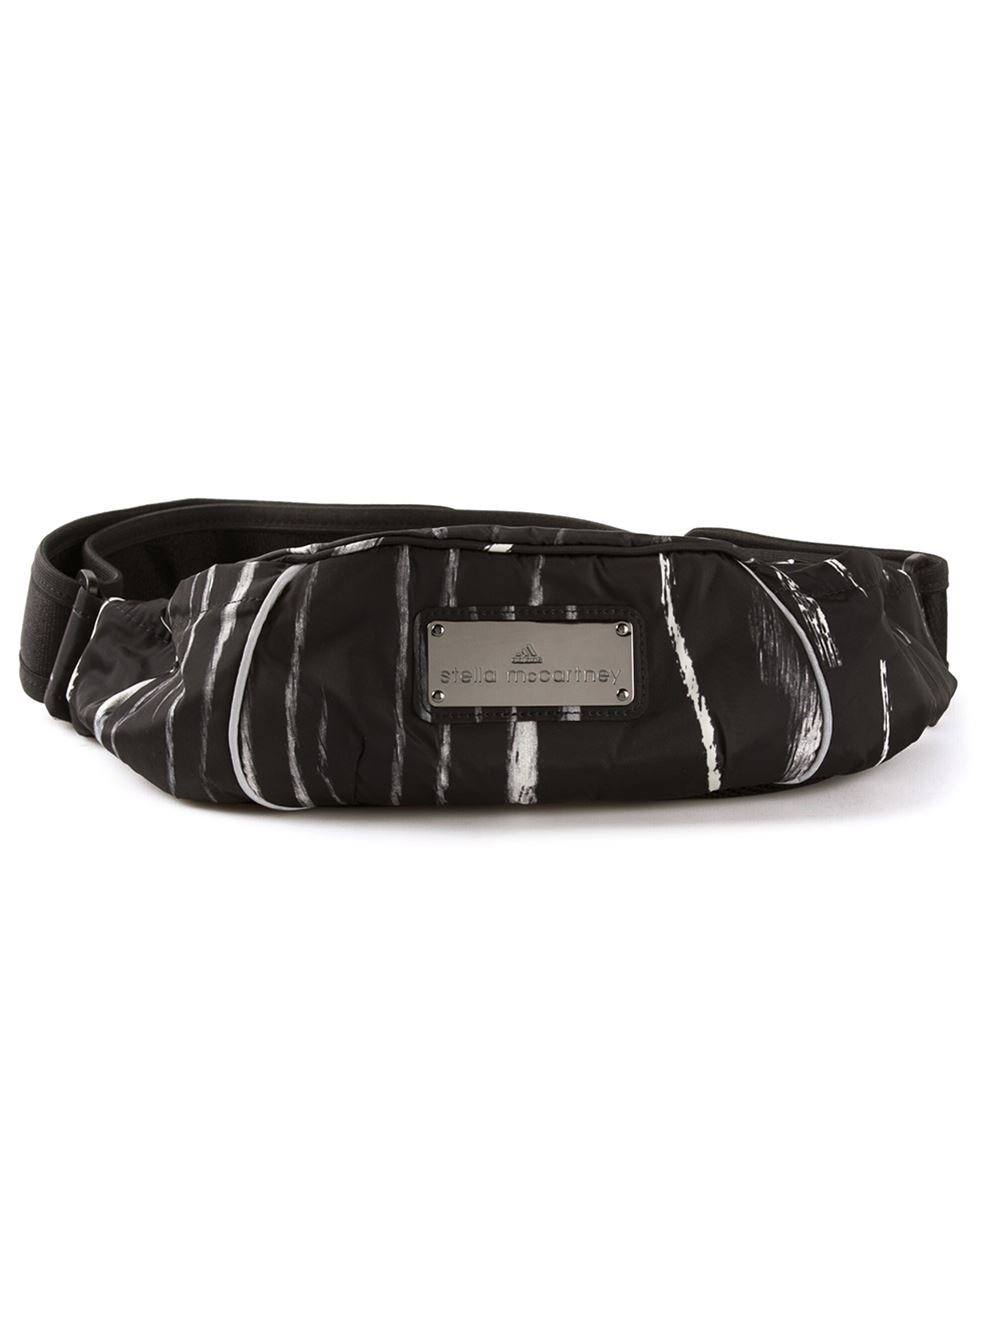 365815a4cb8e Lyst - adidas By Stella McCartney Bumbag Fanny Pack in Black